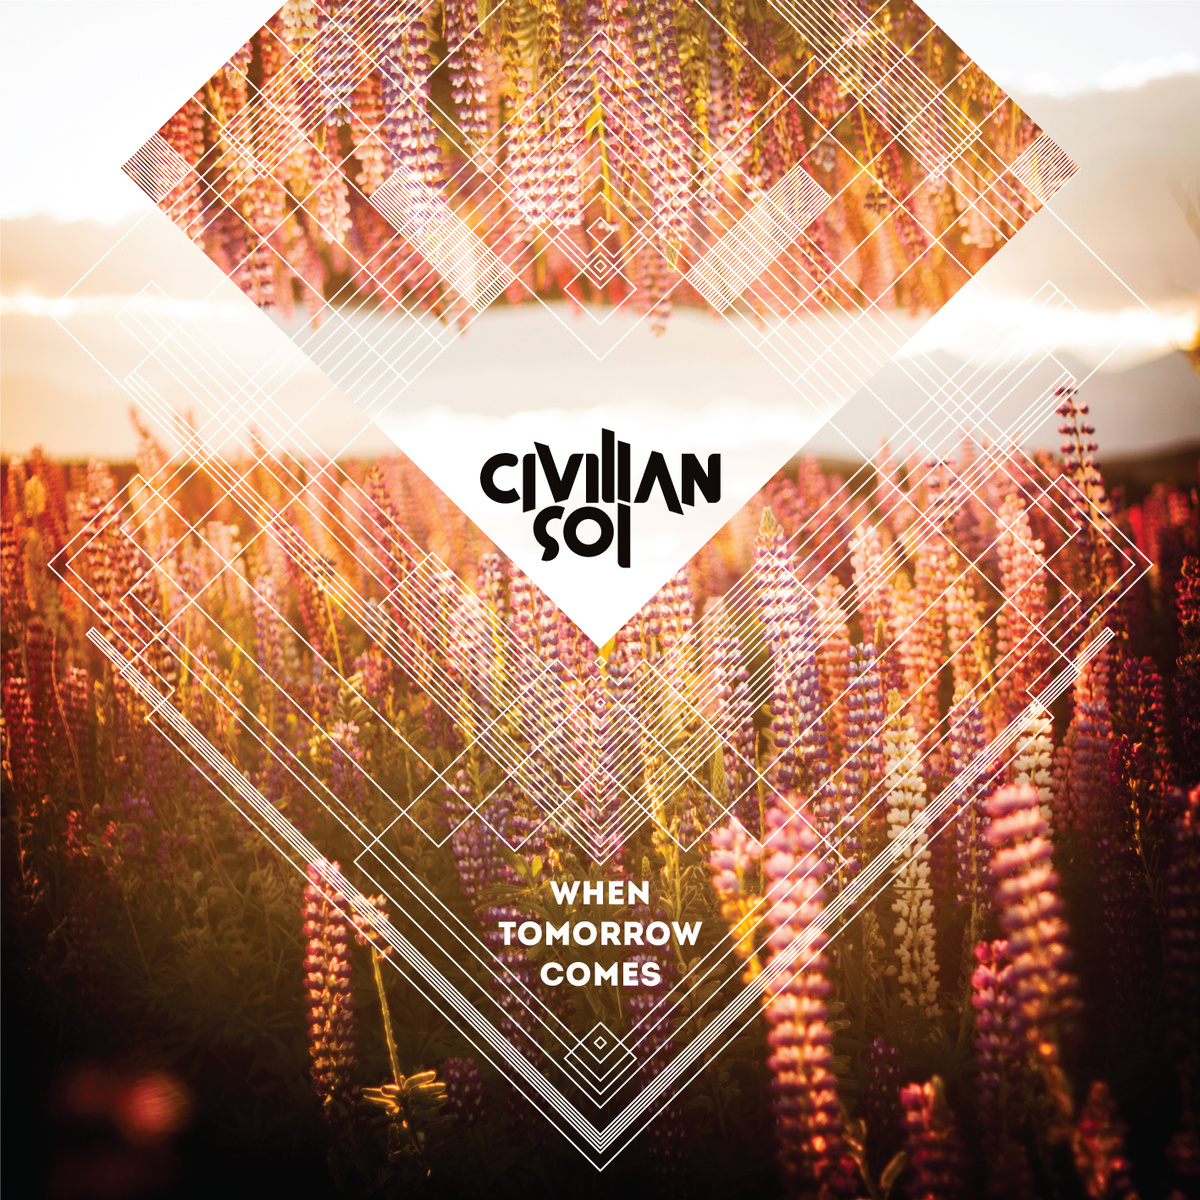 civilian-sol-when-tomorrow-comes